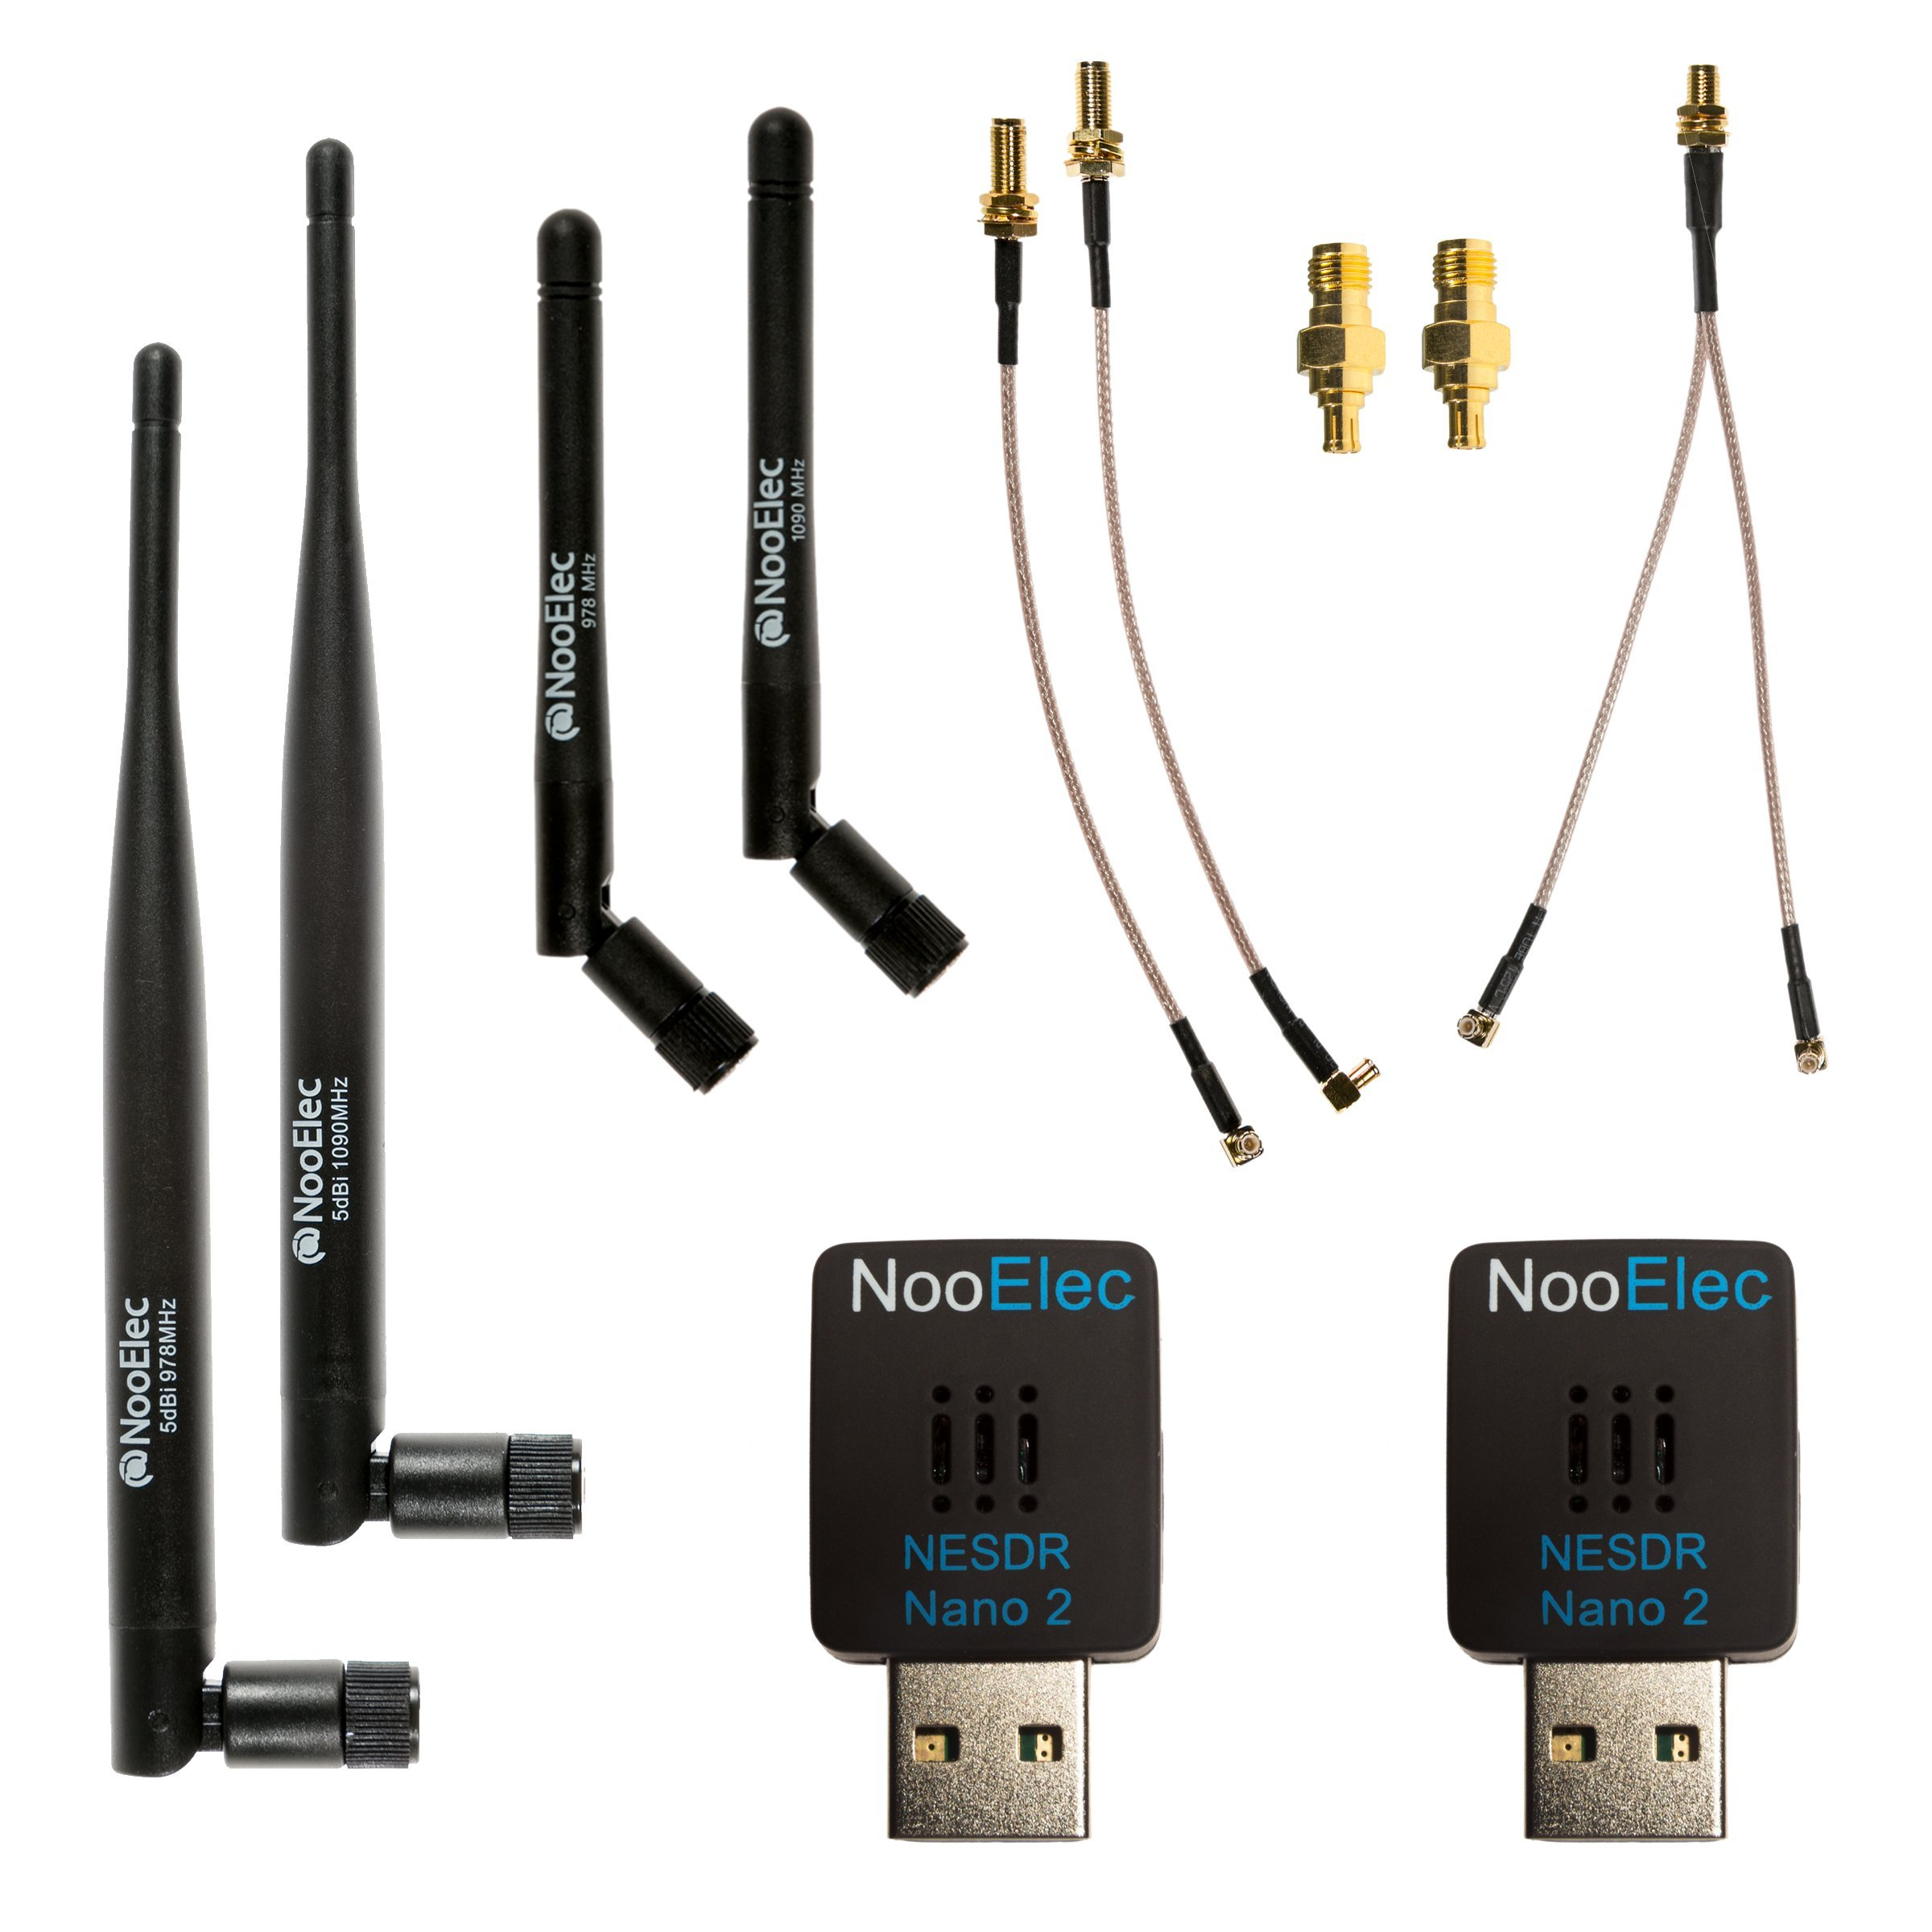 NooElec Dual-Band NESDR Nano 2 ADS-B (978MHz UAT & 1090MHz 1090ES) Bundle For Stratux, Avare, Foreflight, FlightAware & Other ADS-B Applications. Includes 2 SDRs, 4 Antennas, 5 Adapters.